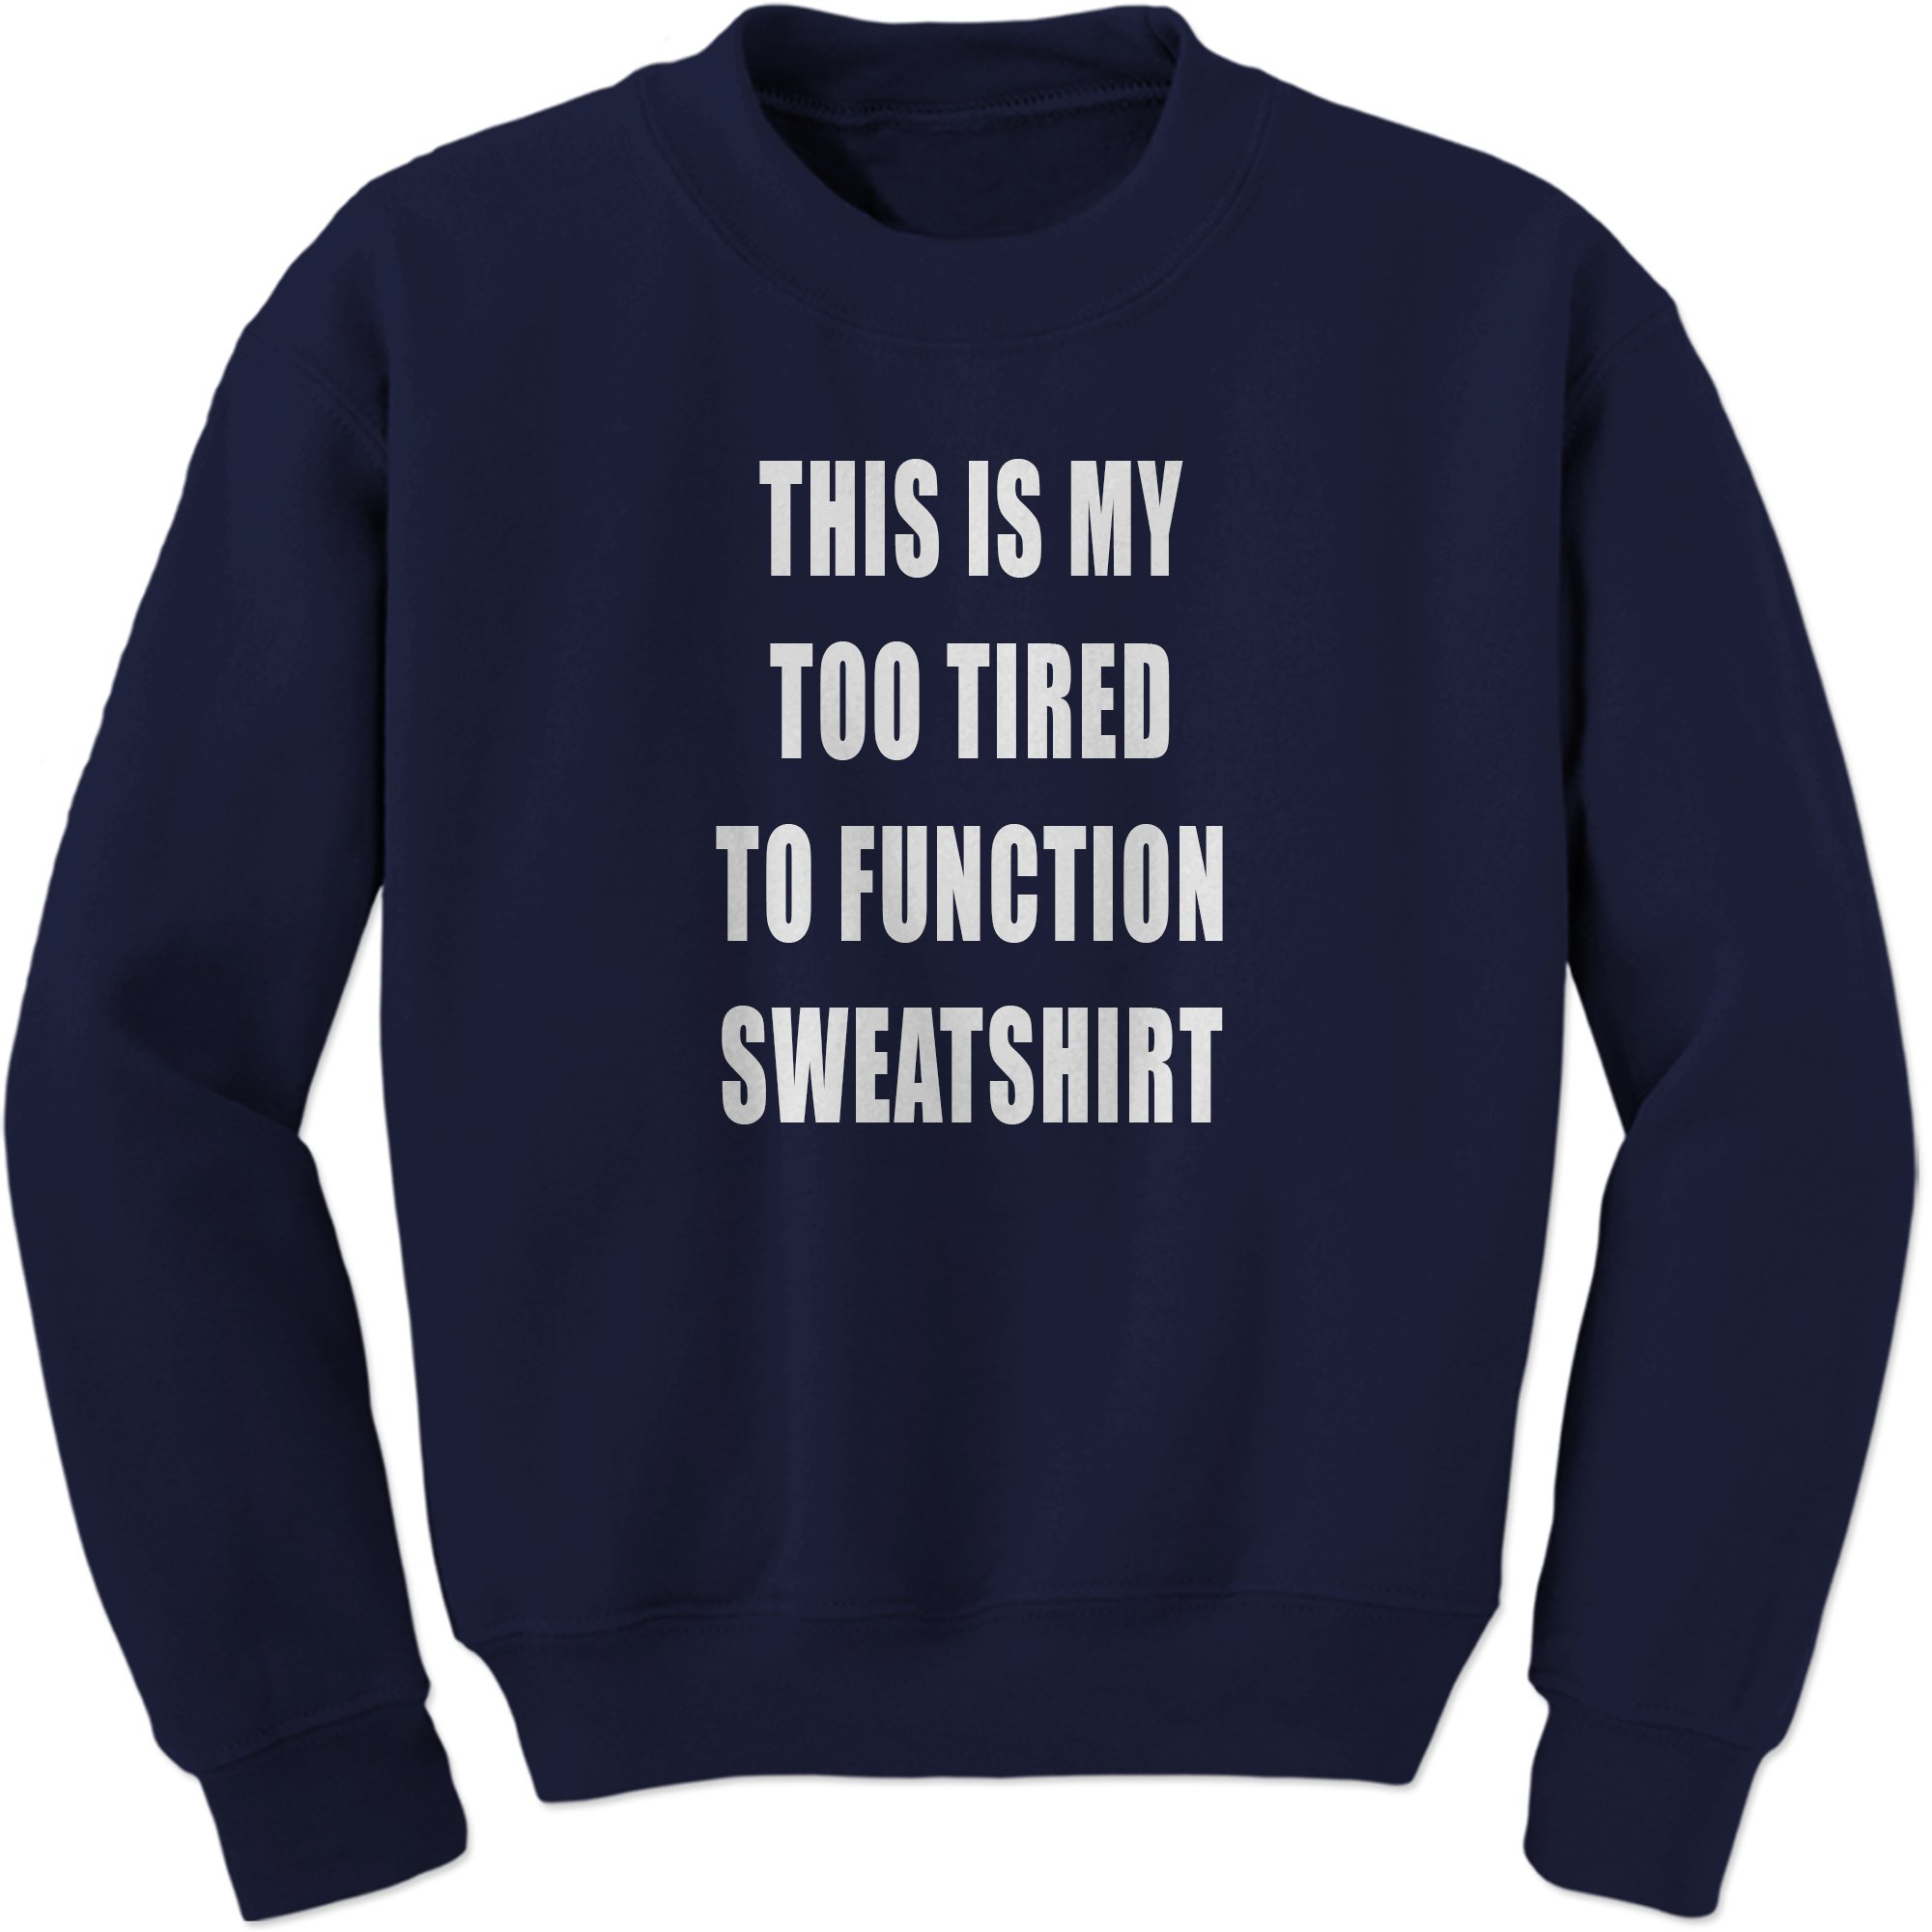 17ab4acd Expression Tees This is My Too Tired to Function Sweatshirt Crewneck  SweatSweatshirt product image